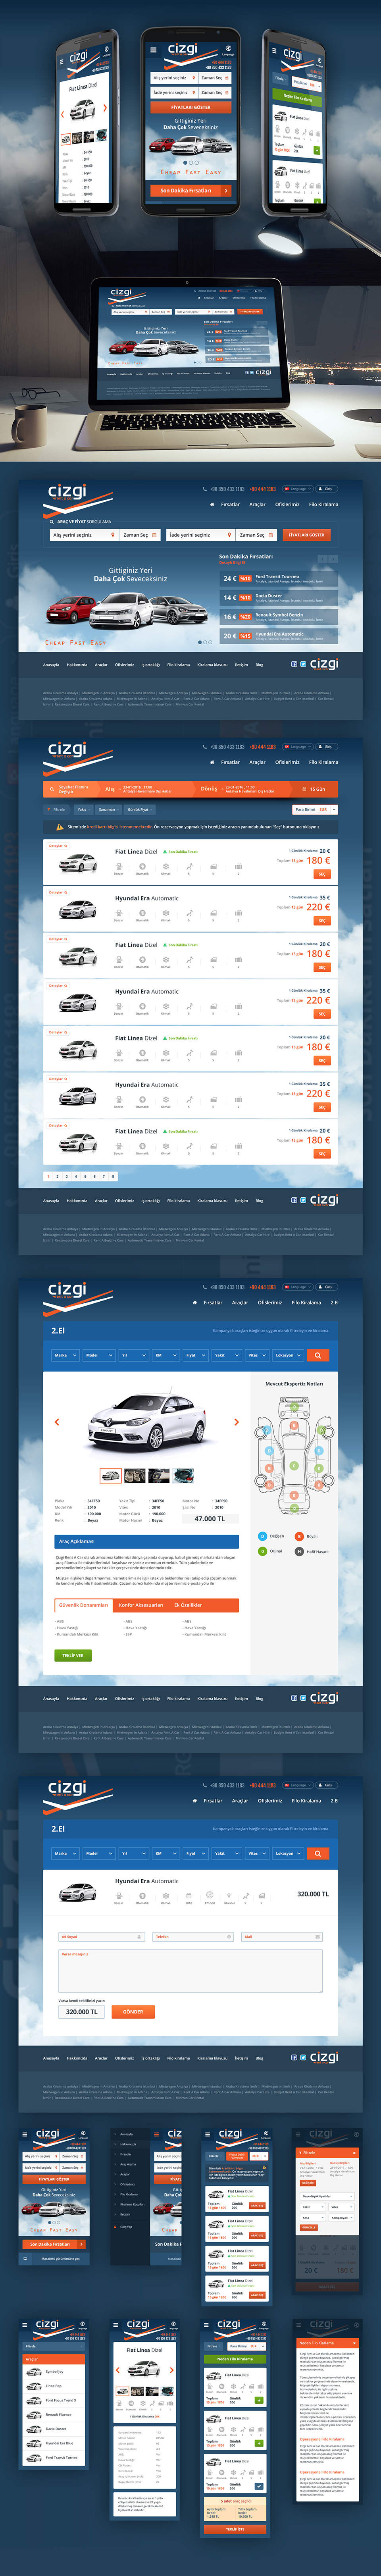 Çizgi rent a car